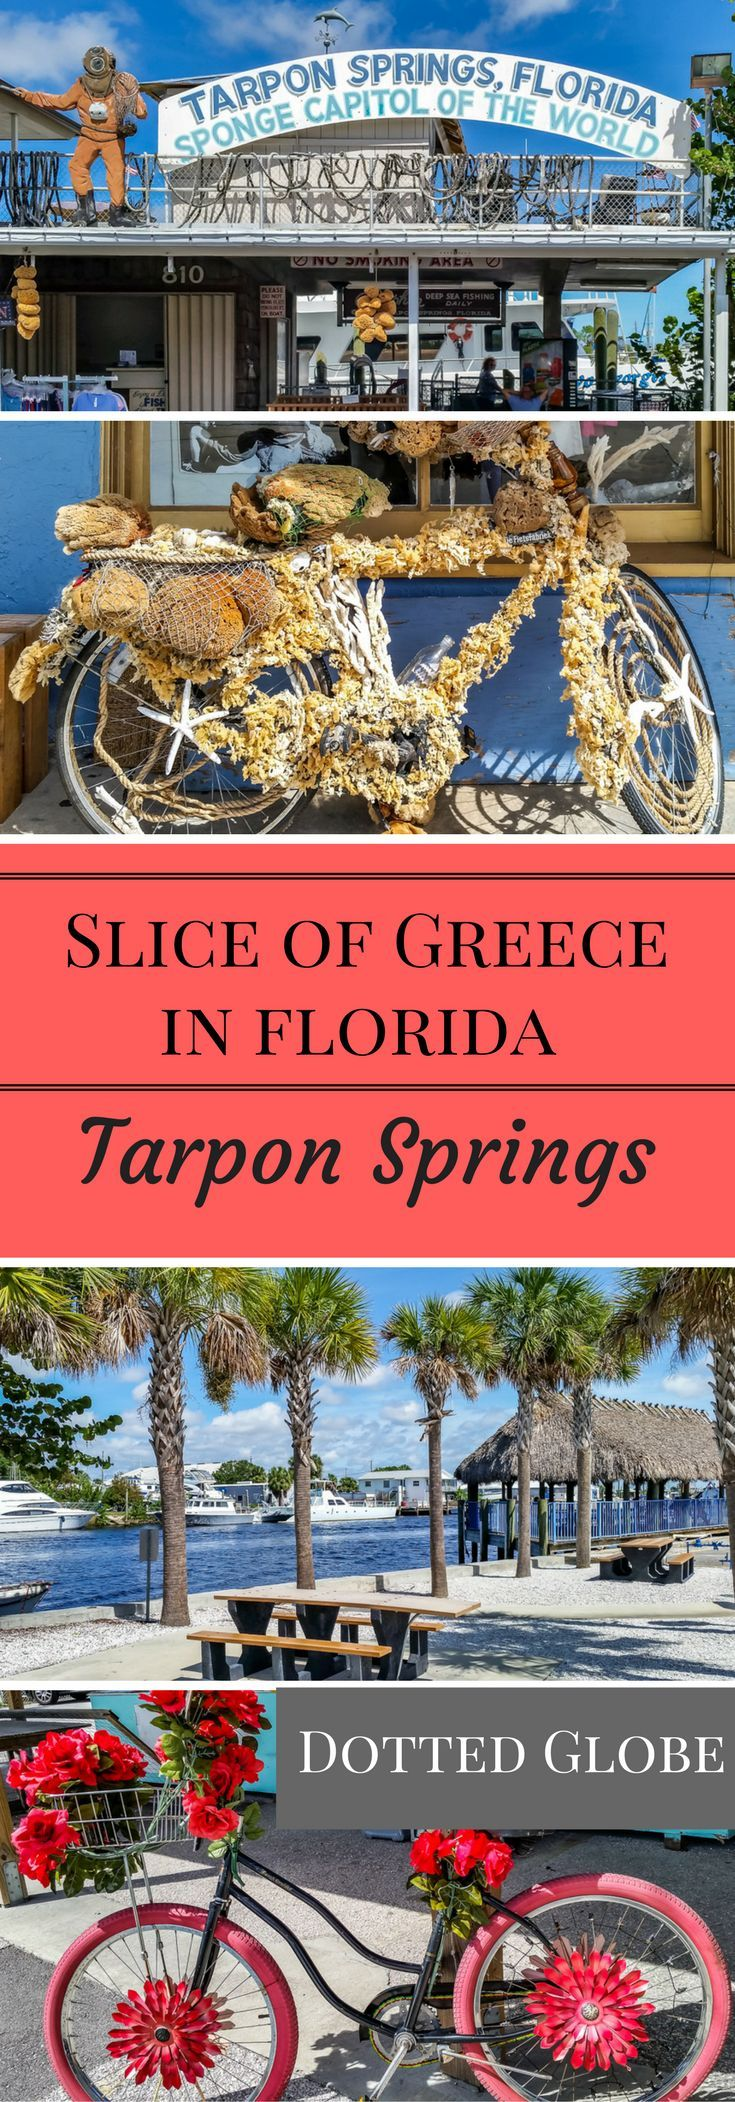 A comprehensive tourist guide to Tarpon Springs, located off Florida's Gulf Coast. It is a charming coastal town known for its Greek culture, Sponge Dock and Greek cuisine. Hellas is one of most popular restaurant in Tarpon Springs serving Greek cuisine. Read everything about visiting Tarpon Springs in this guide.